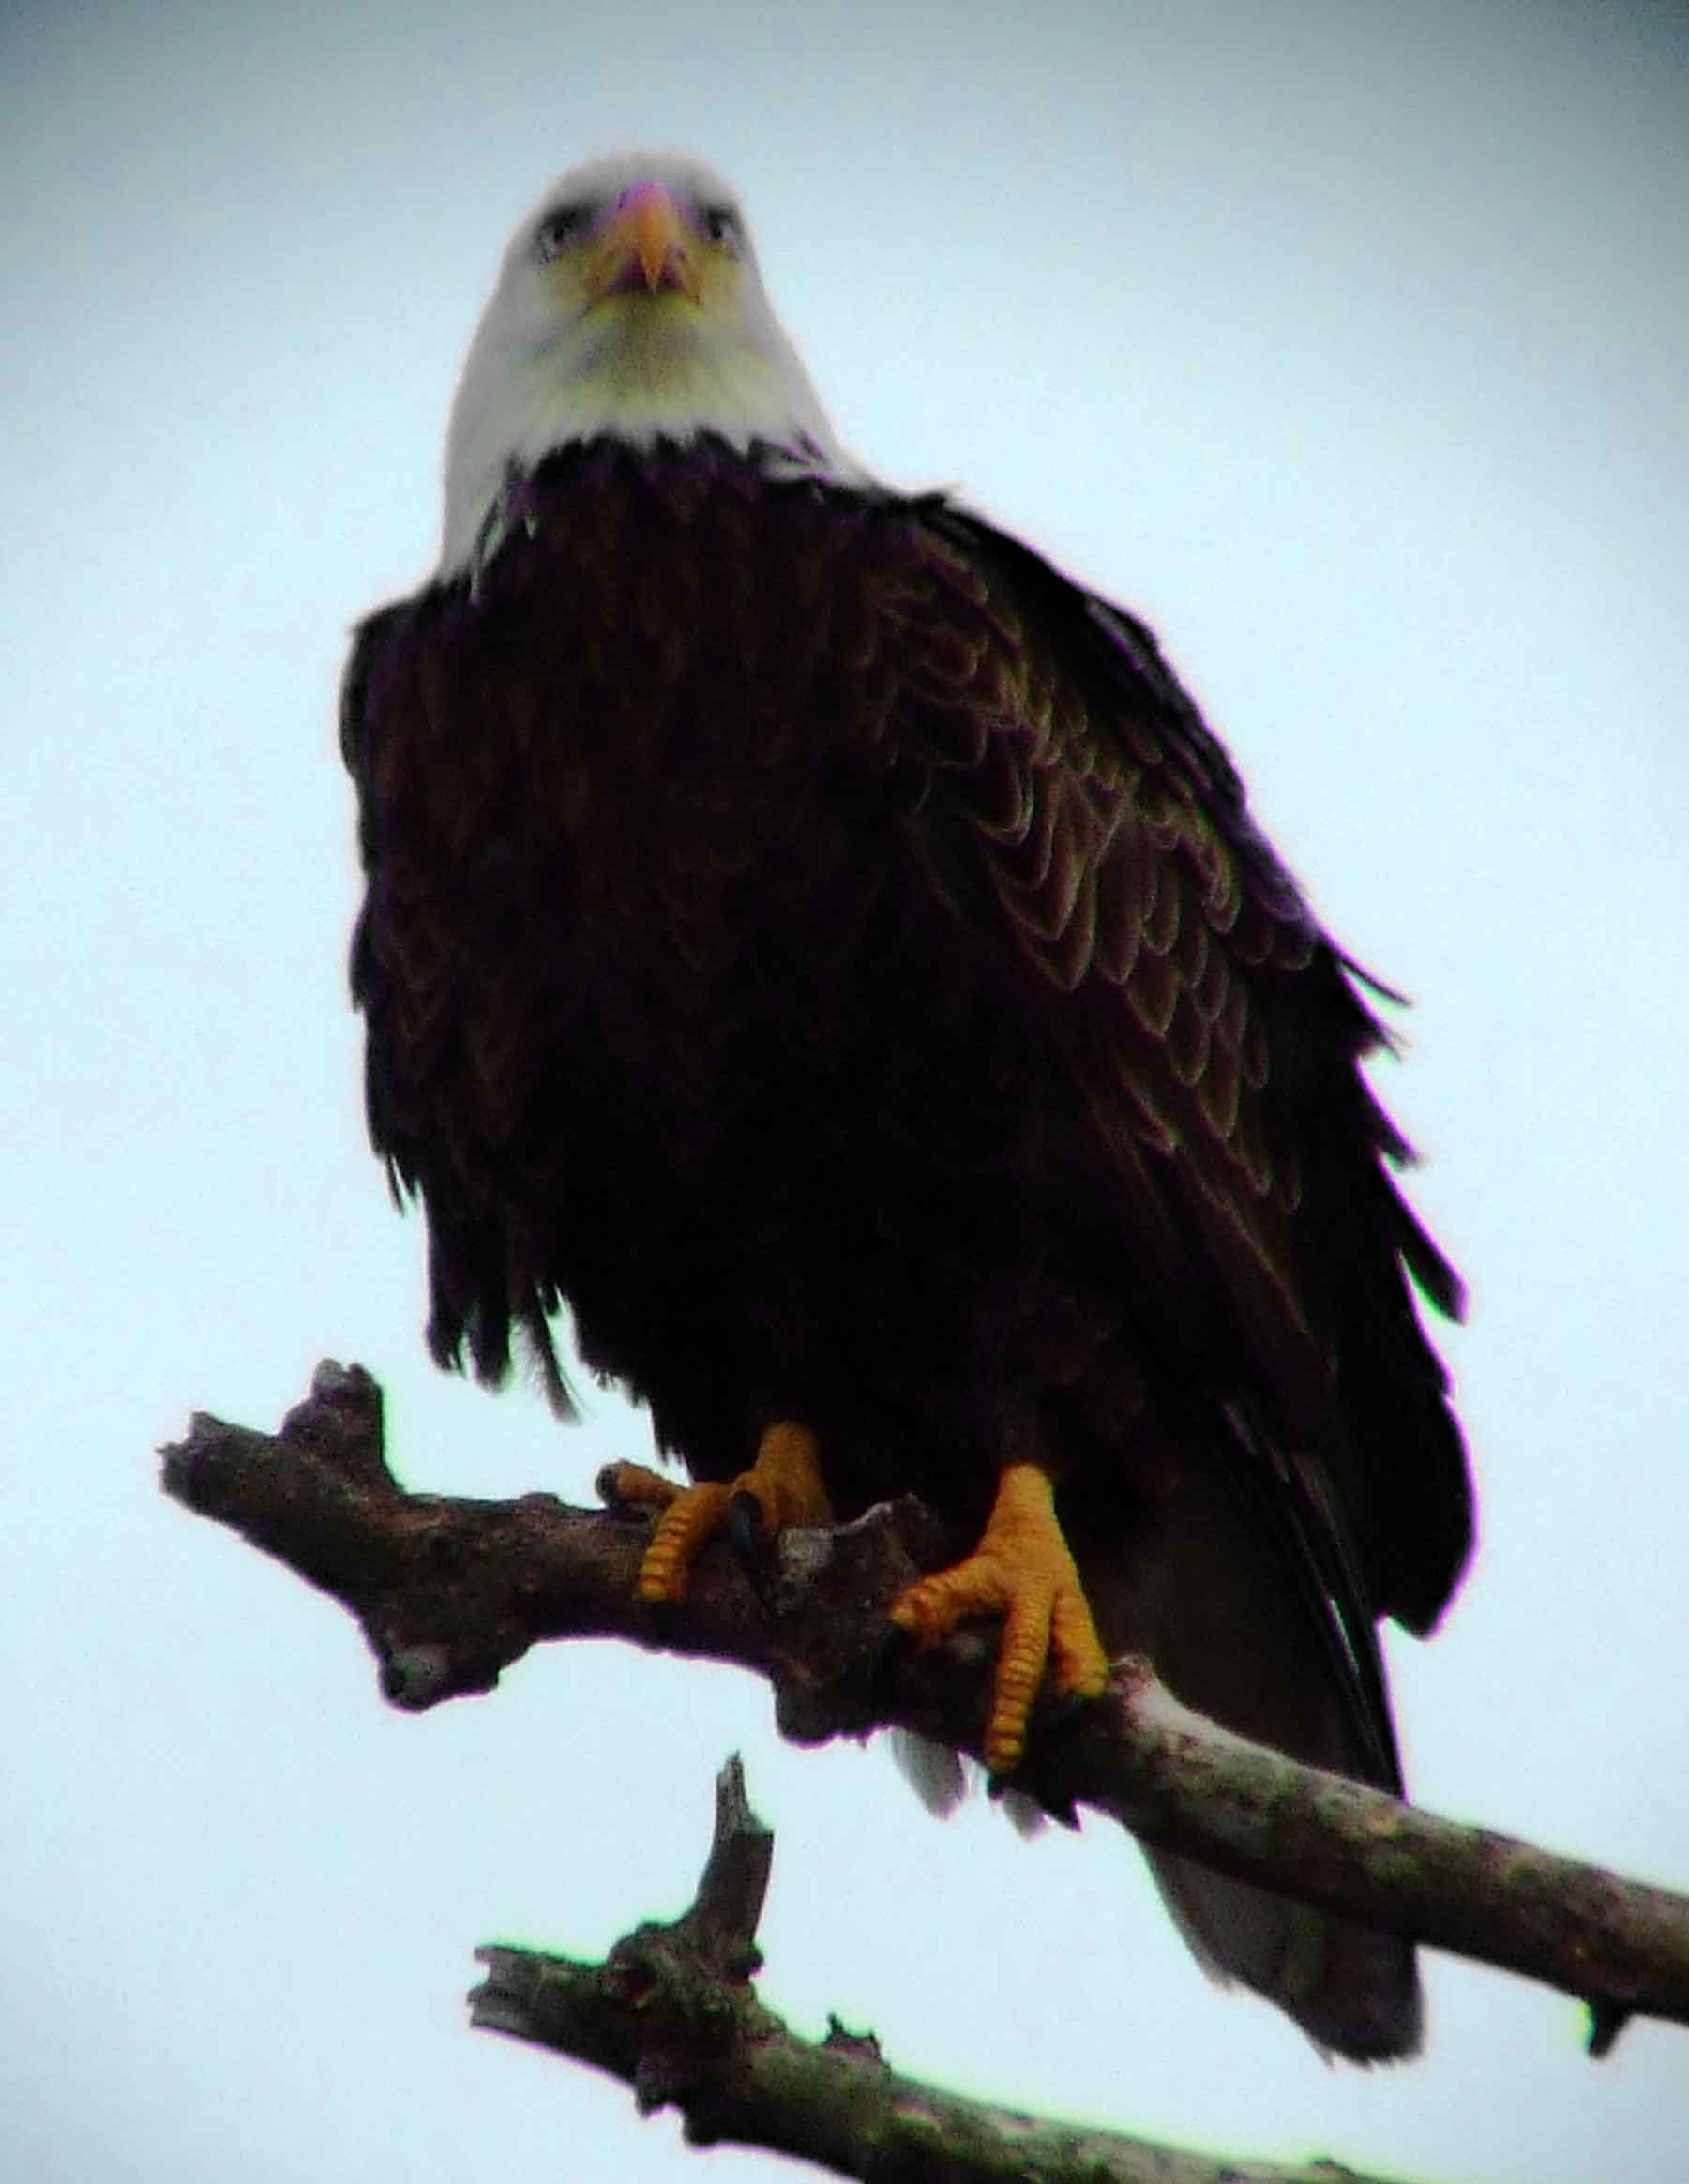 an overview of the bald eagle species of the american bird